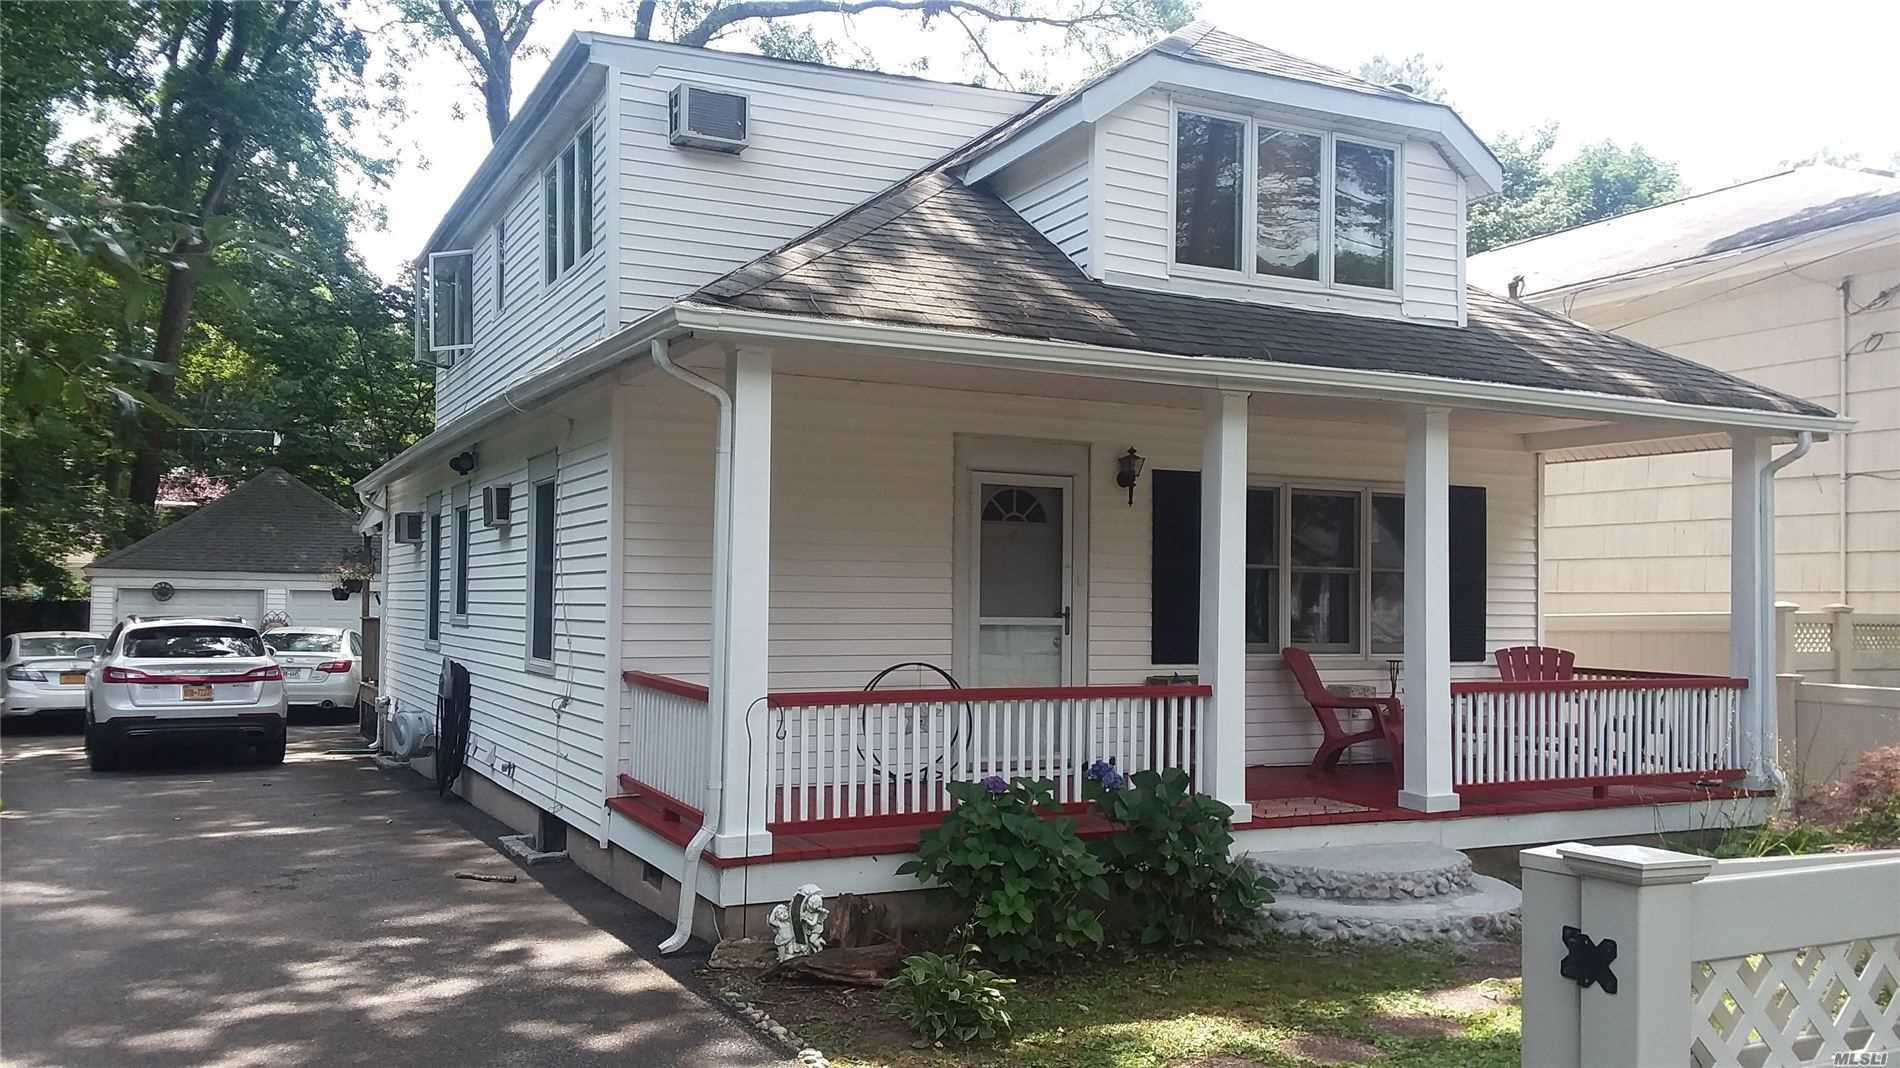 62 E 22nd St, Huntington Station, NY 11746 - MLS#: 3217355